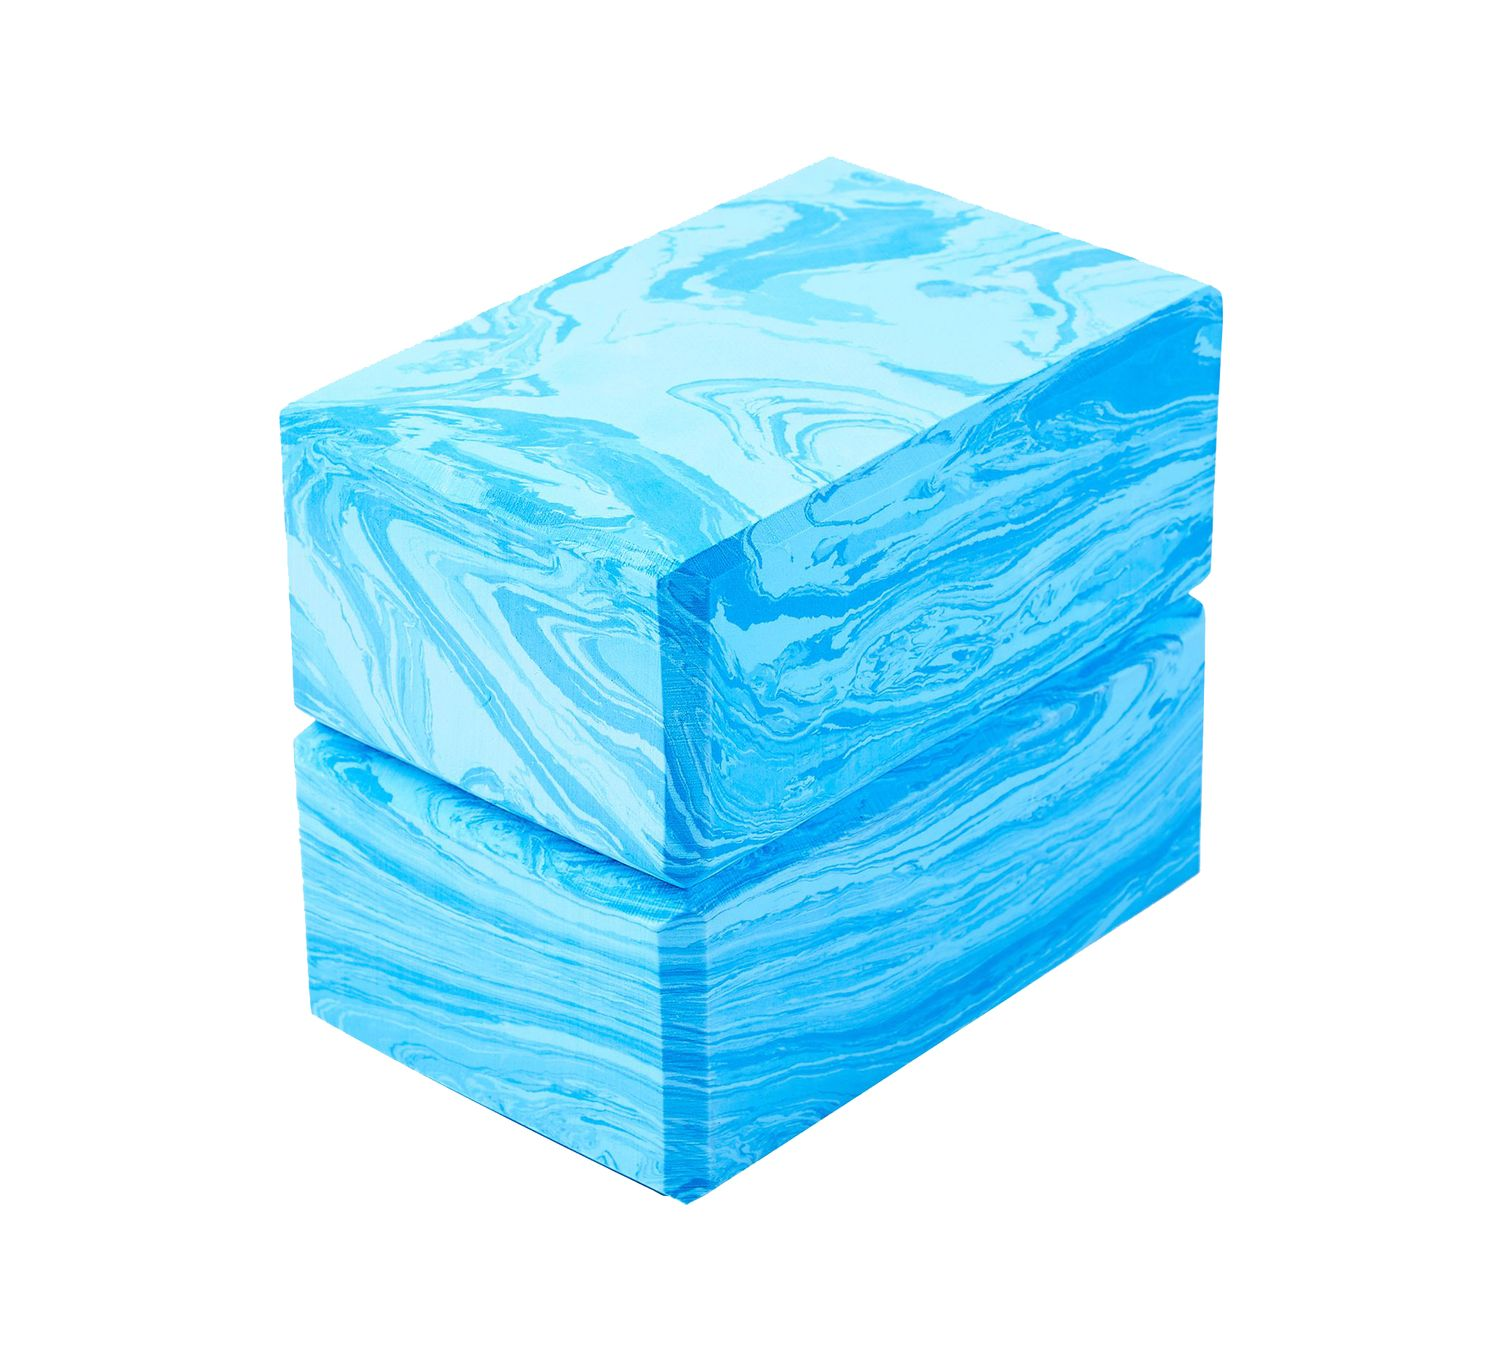 Yoga Block 2er Set camouflage blau